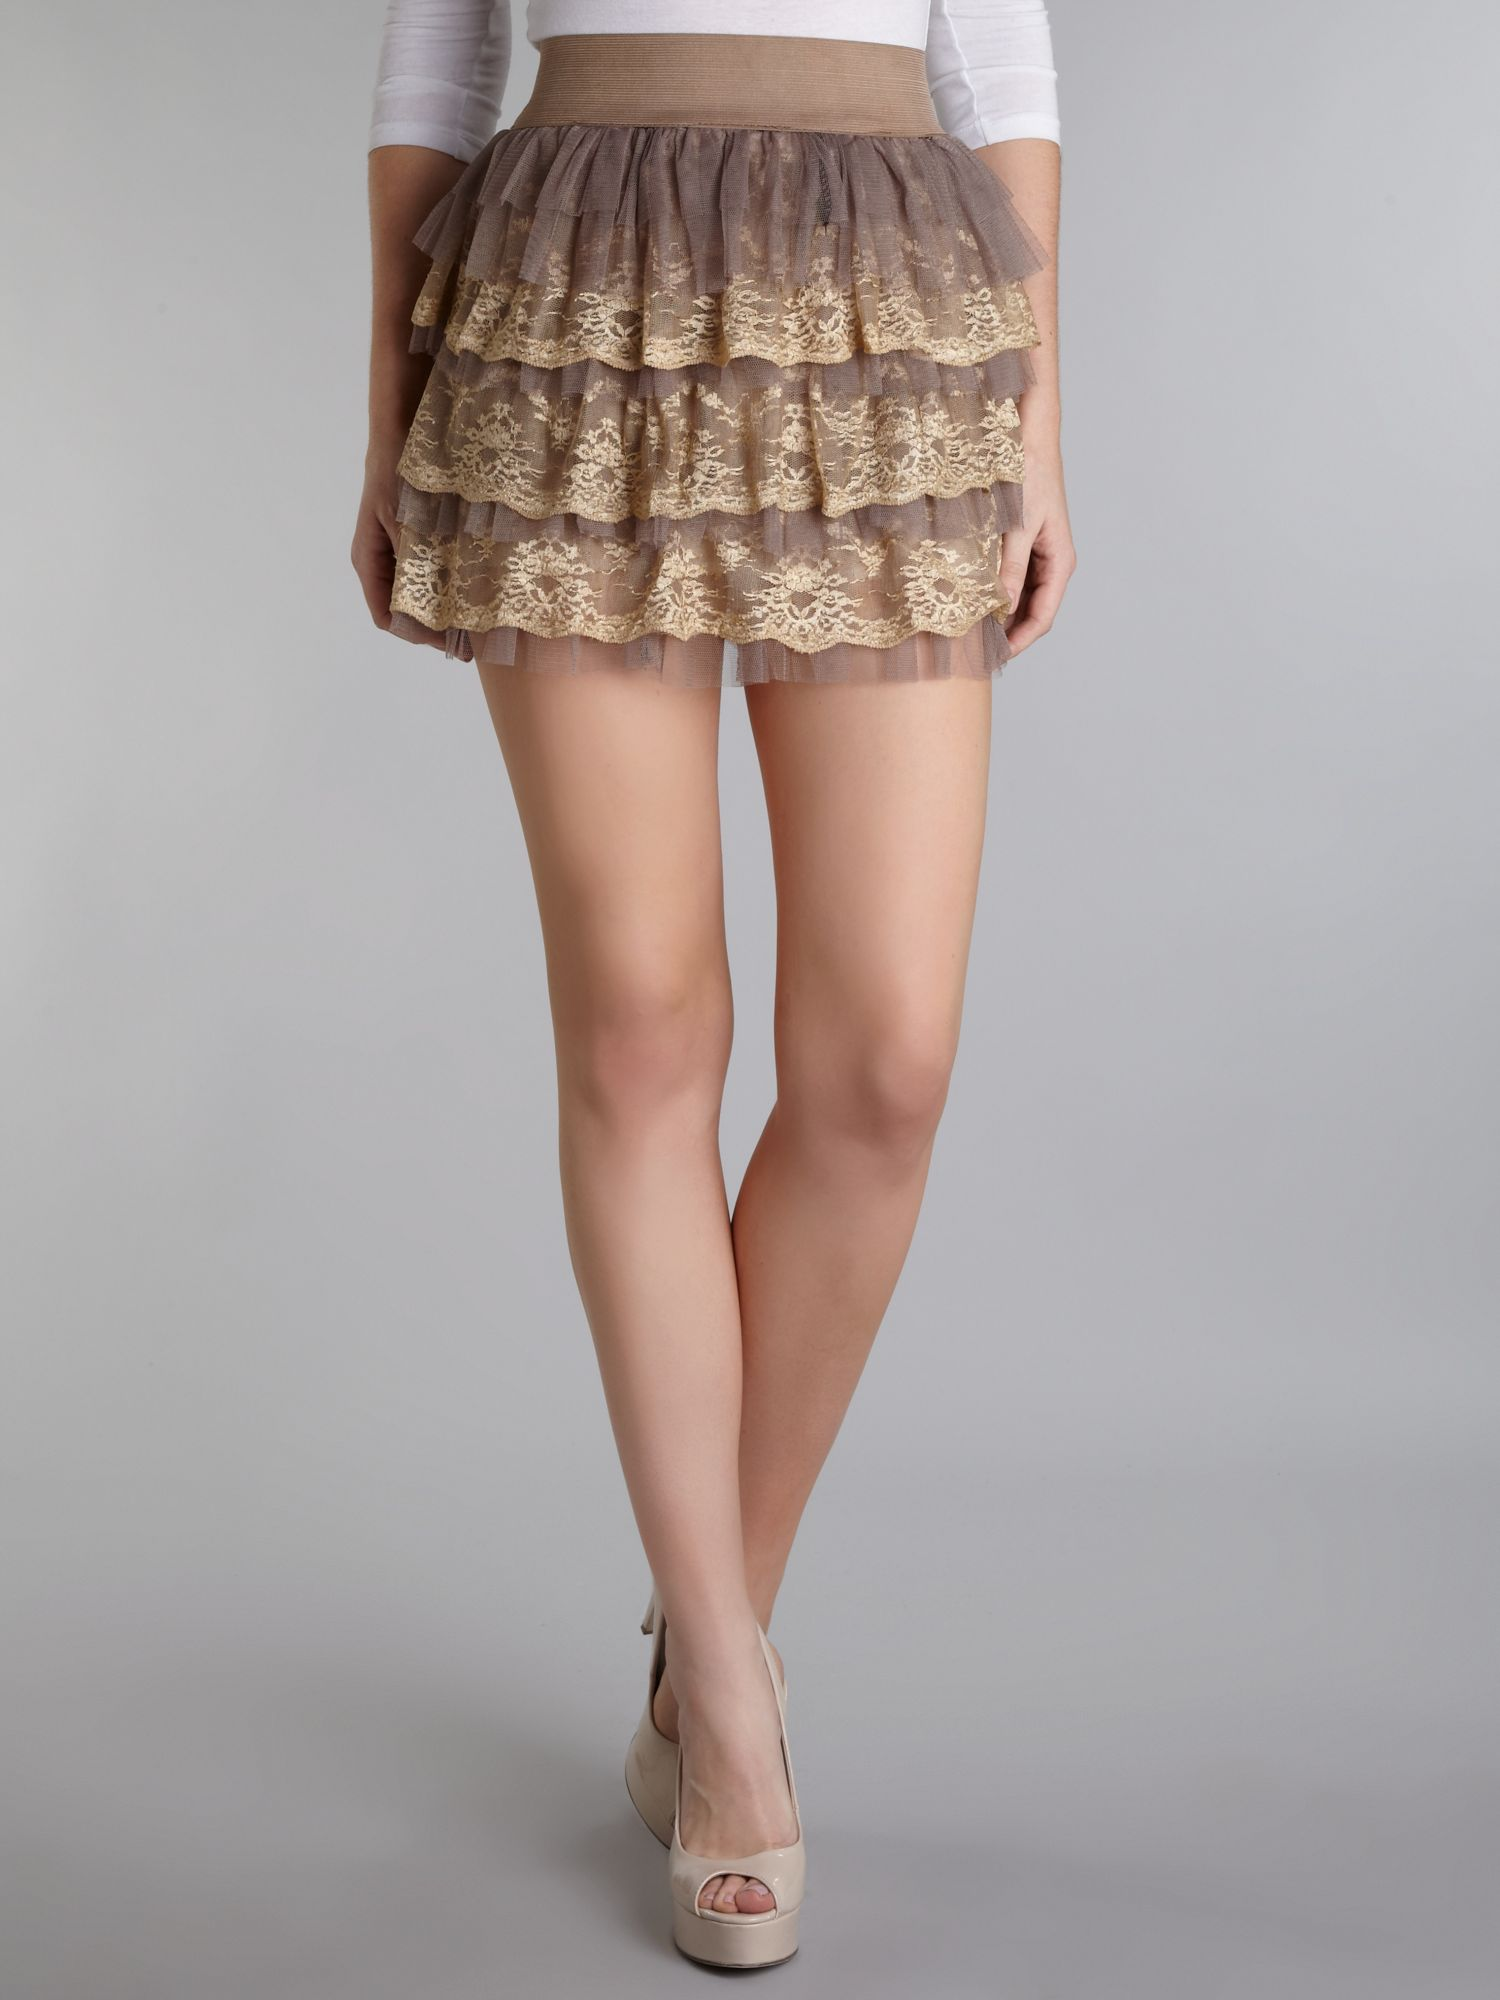 Lace layered skirt